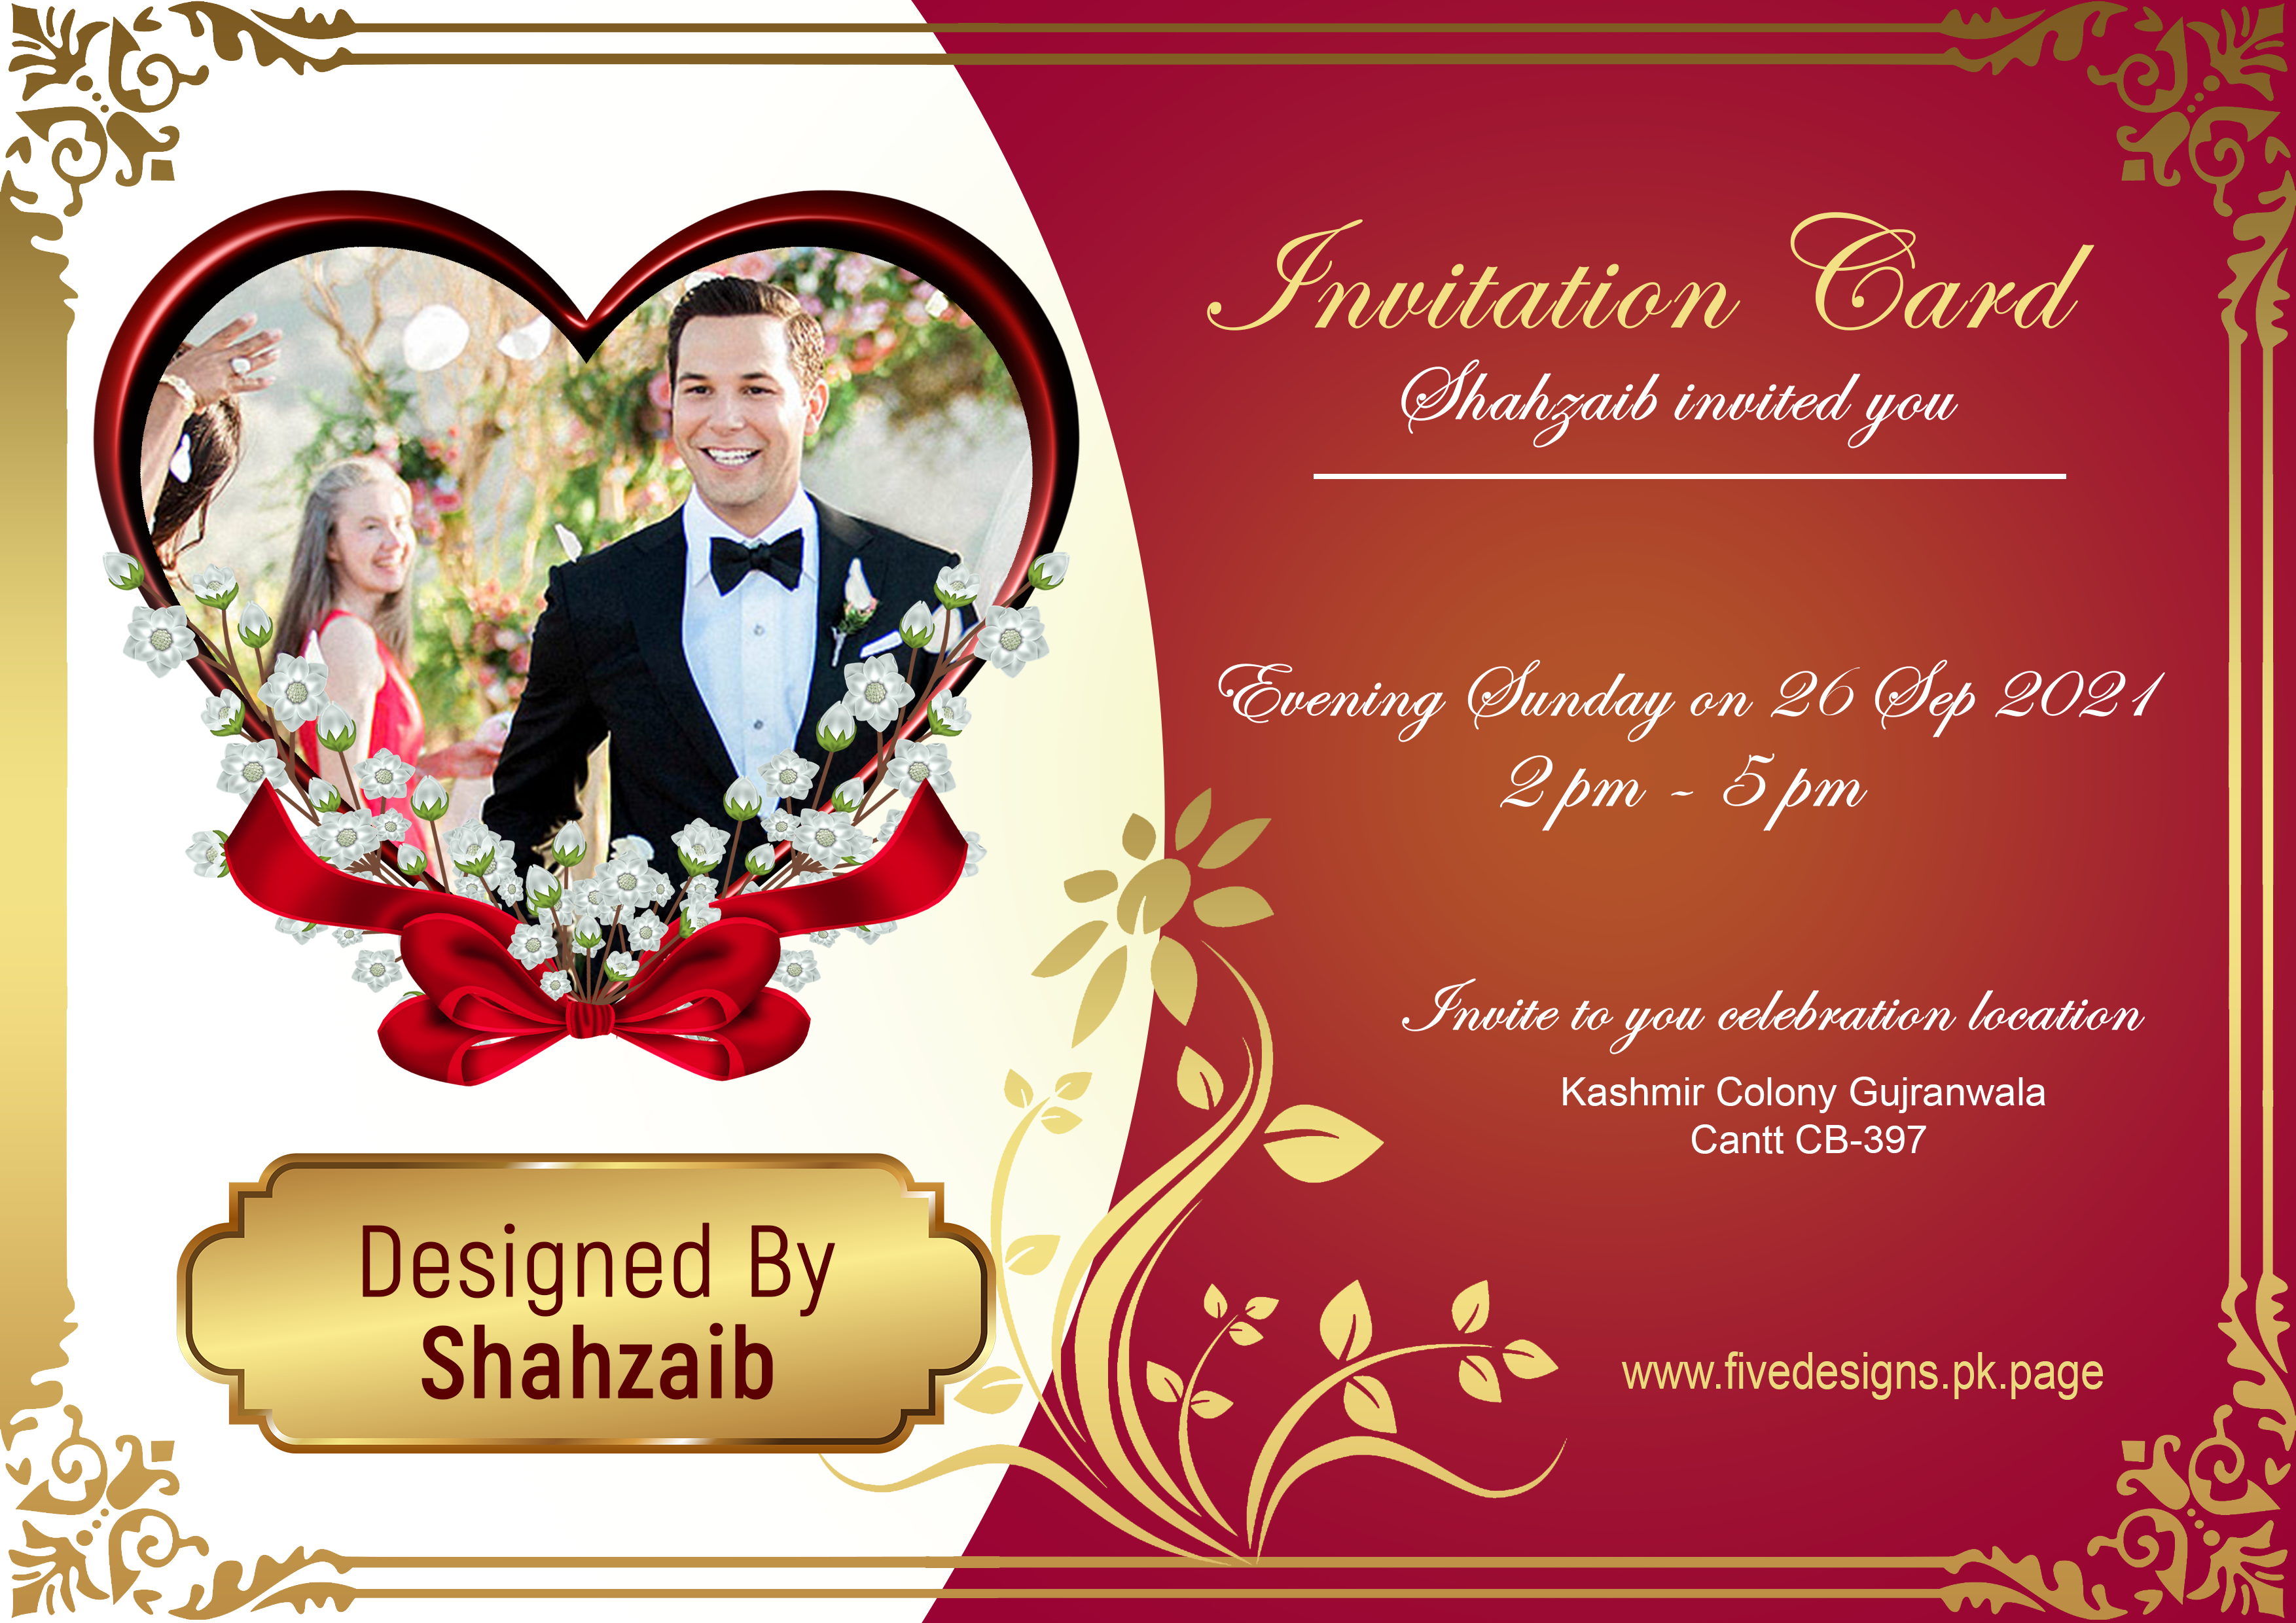 I will design a wedding or invitation card for any event